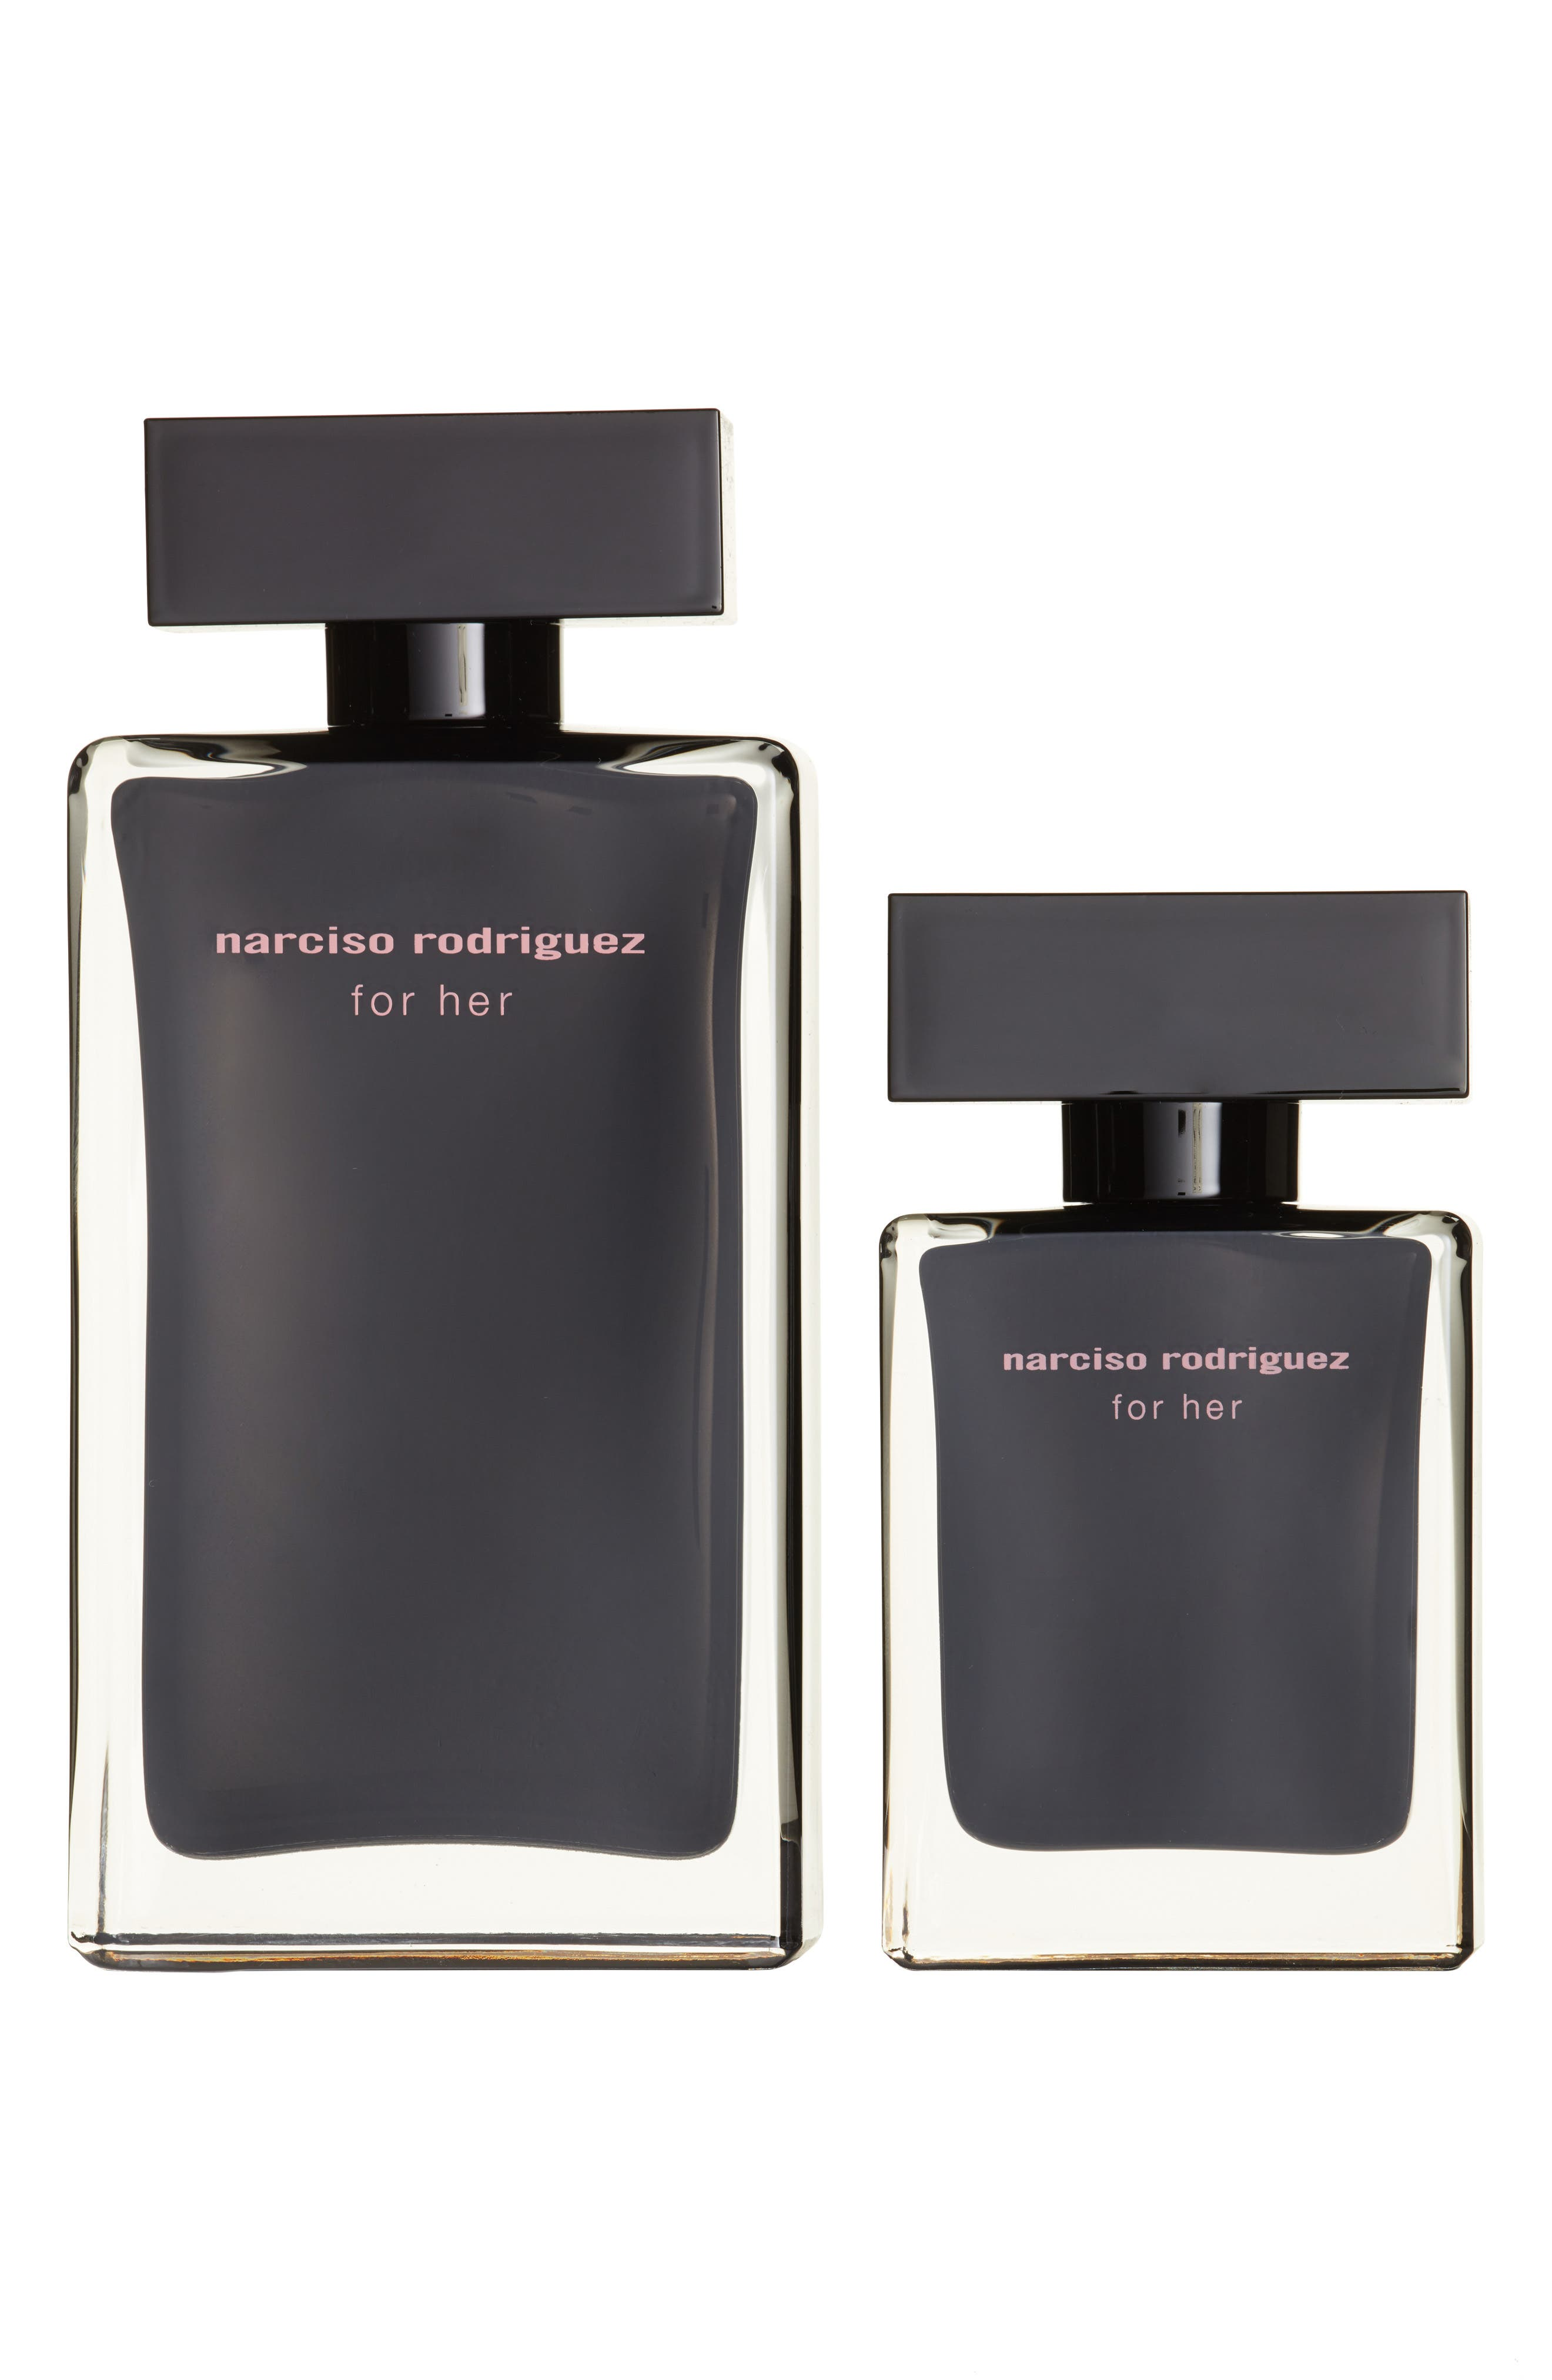 Narciso Rodriguez For Her Eau de Toilette Set ($163 Value)